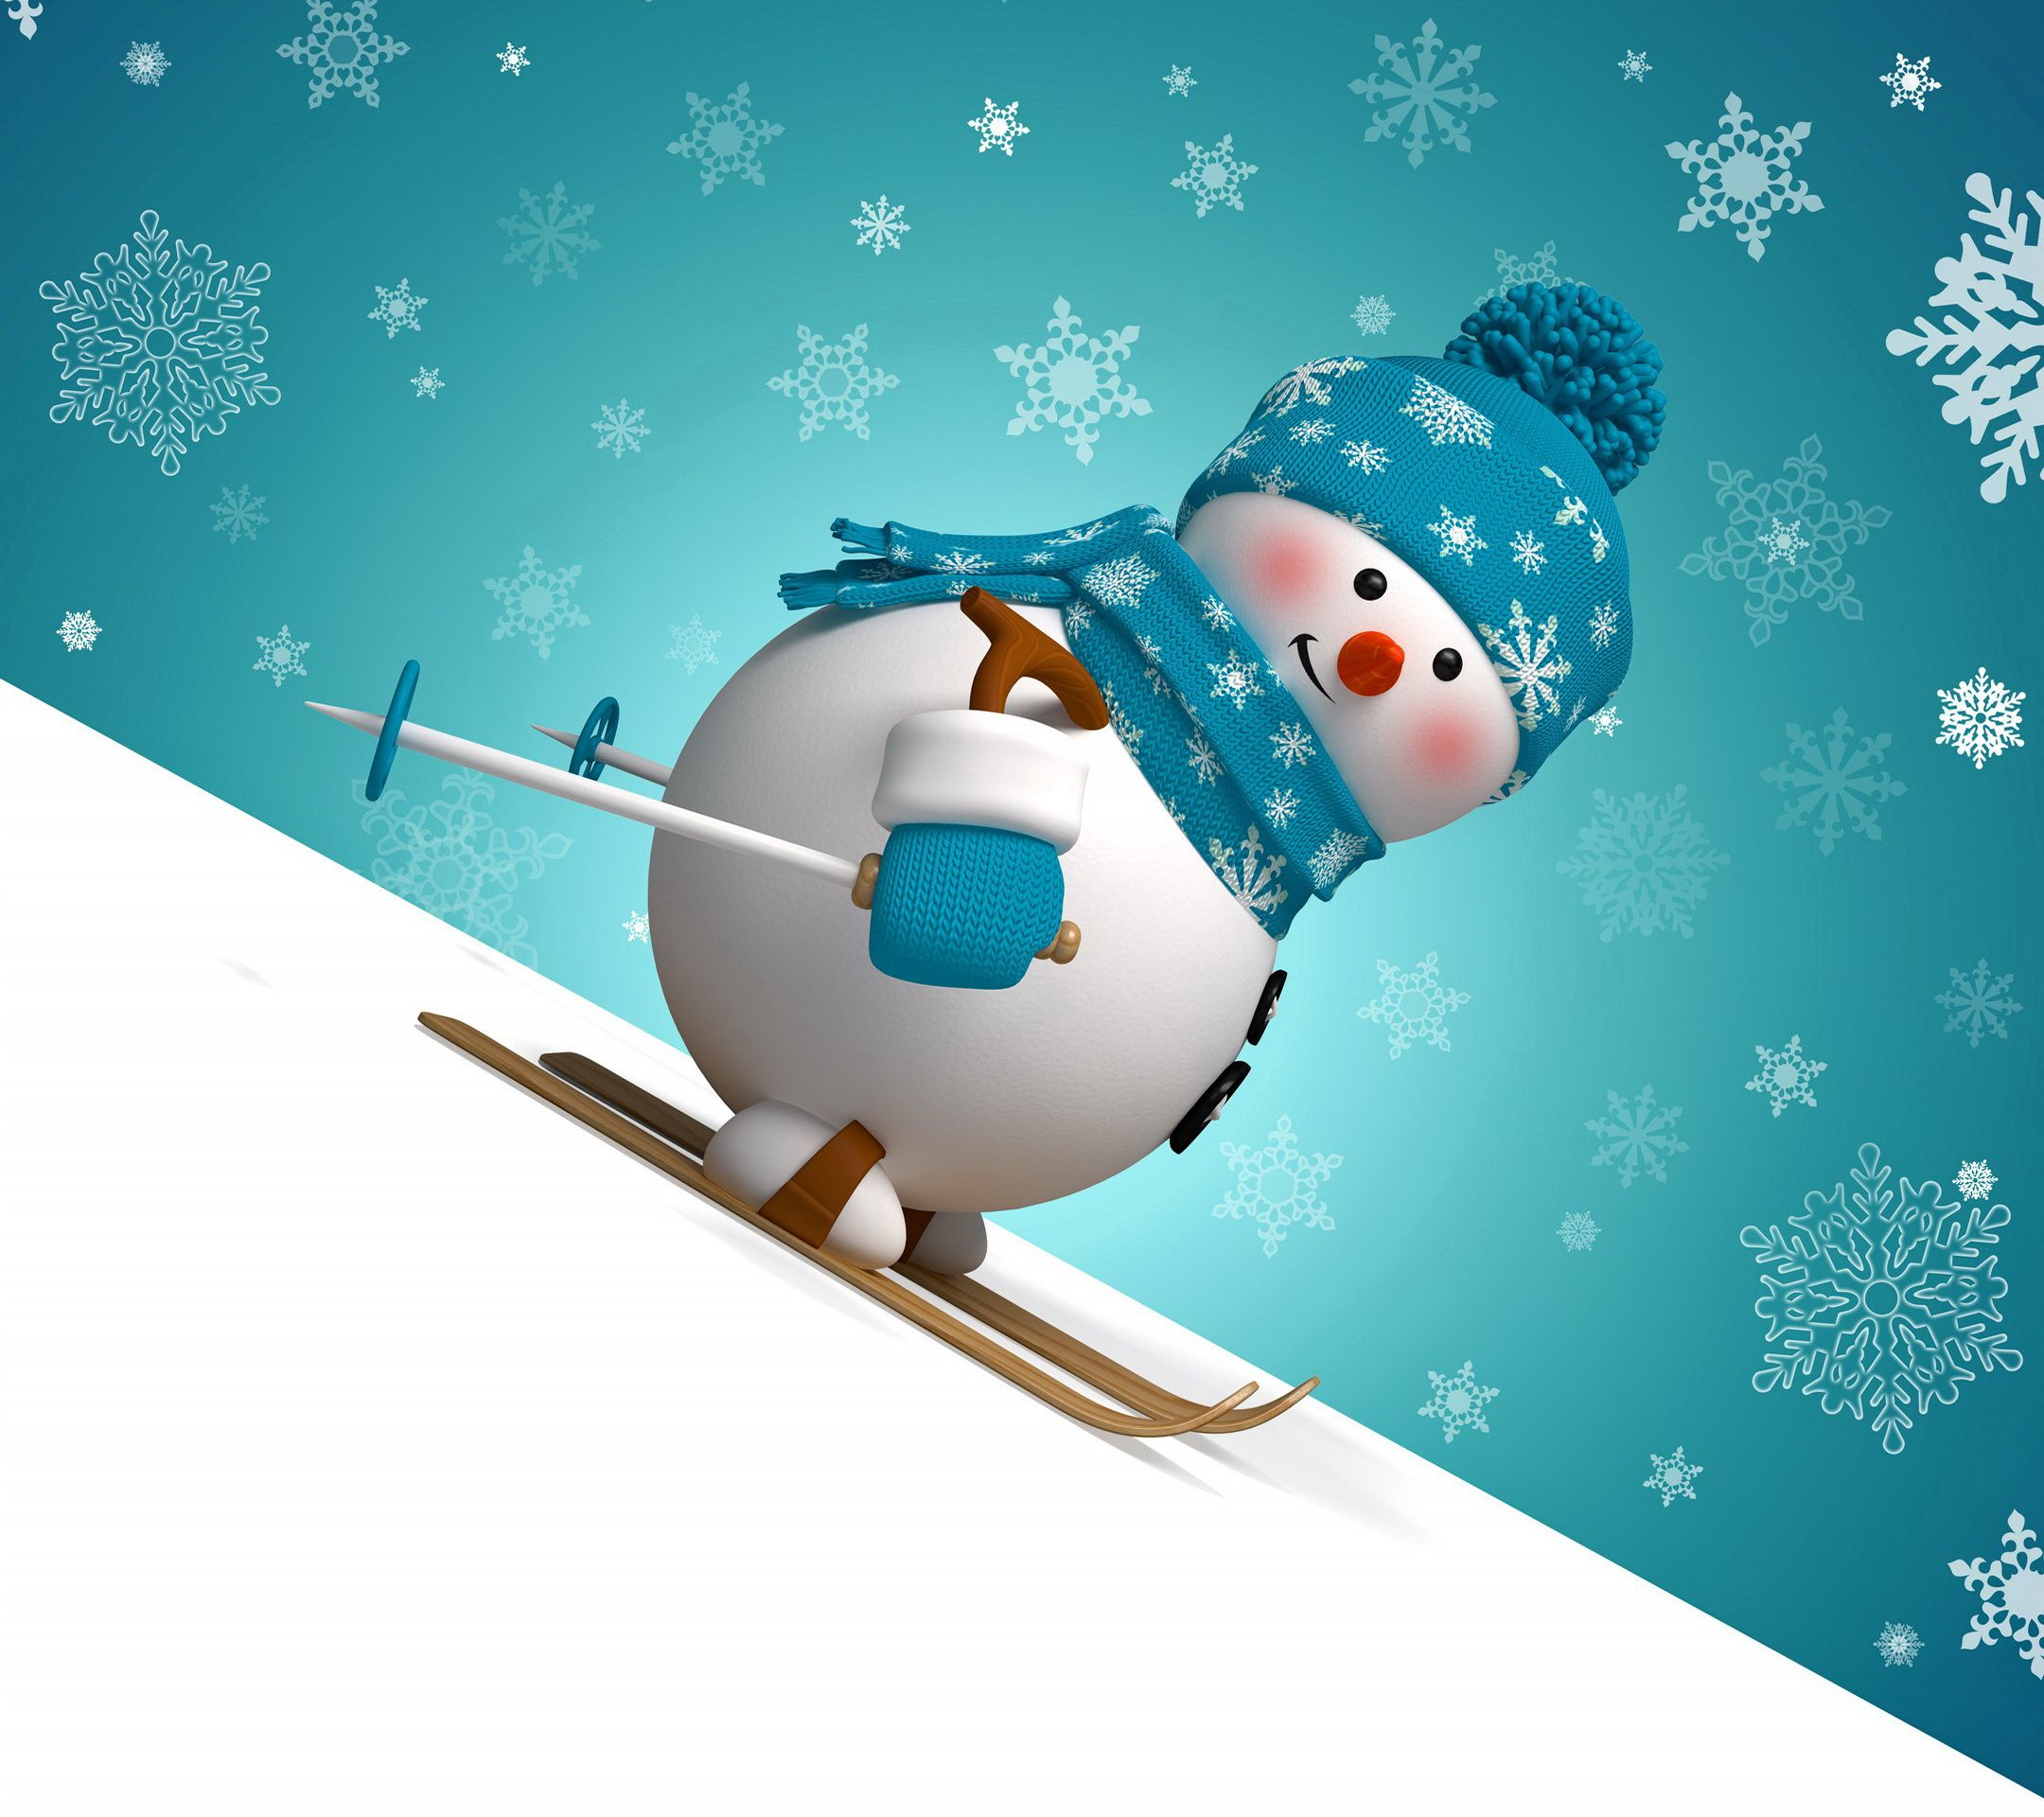 Snowman Wallpaper Desktop Computer Hd Wallpaper Mobile Added On ,